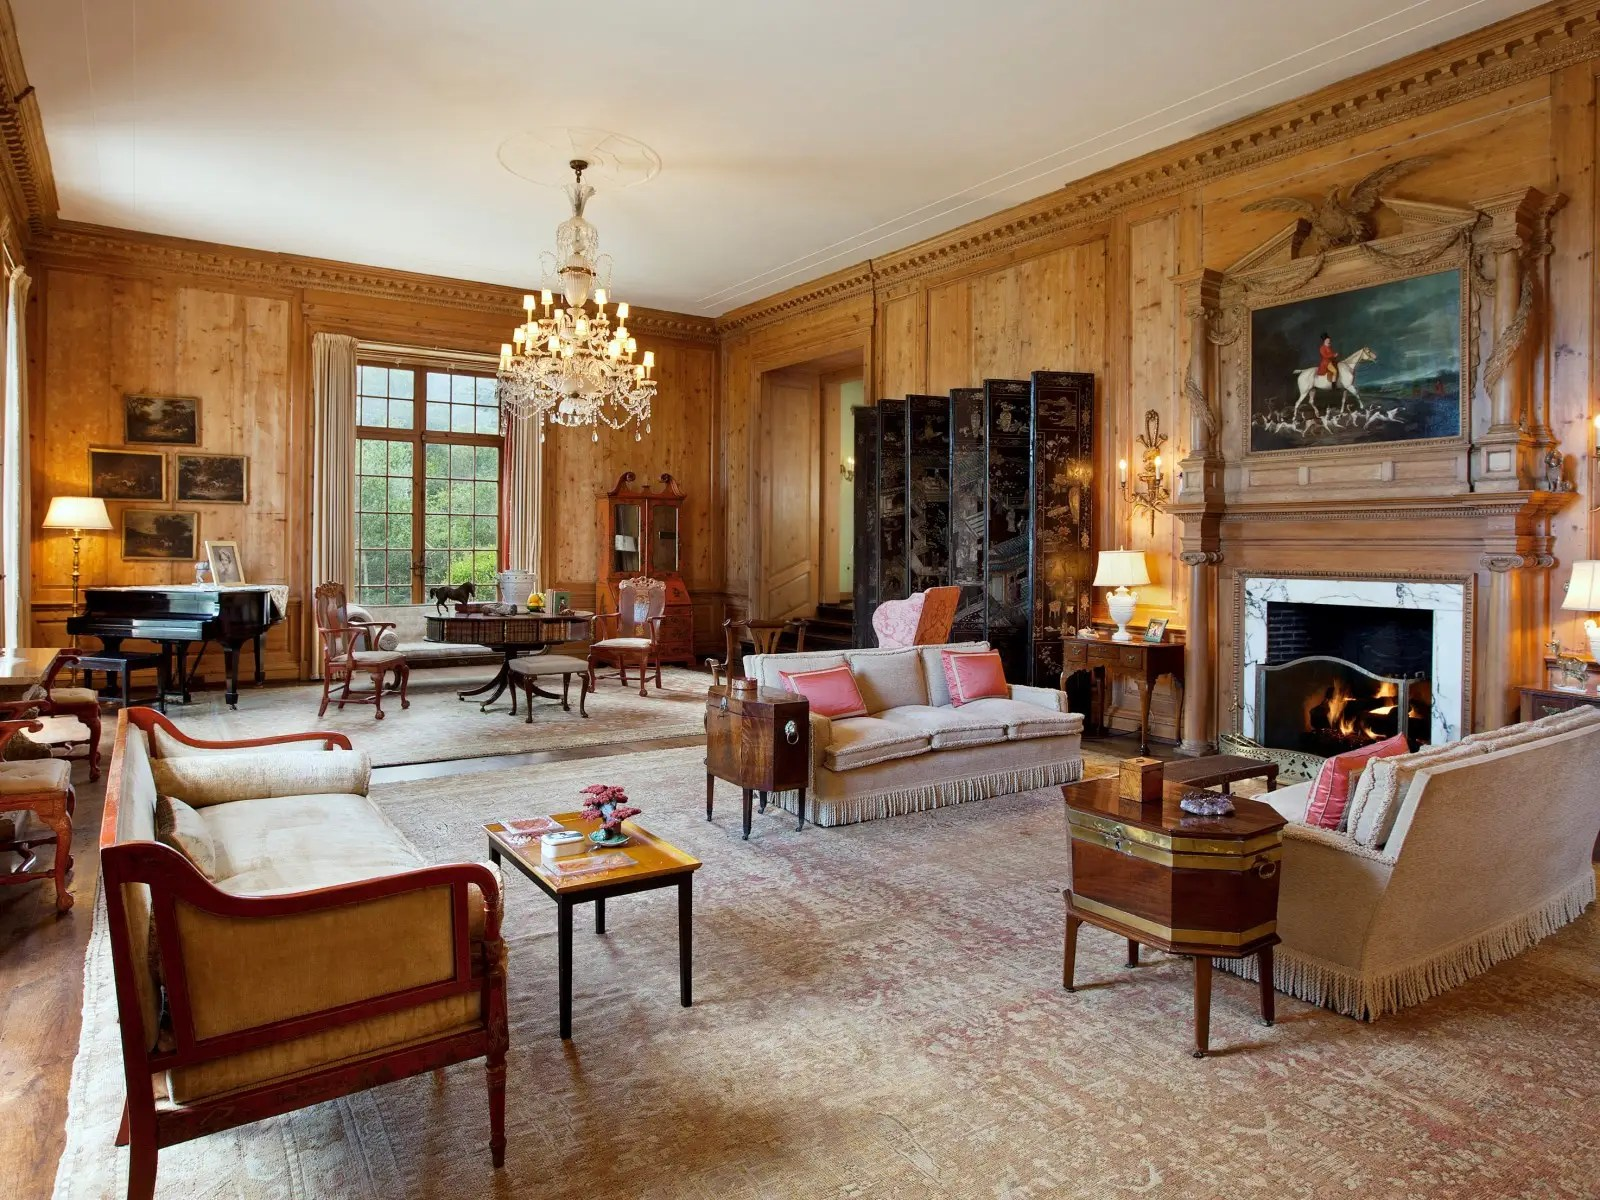 The rooms hearken back to a previous era of grandeur with tall ceilings and paintings.